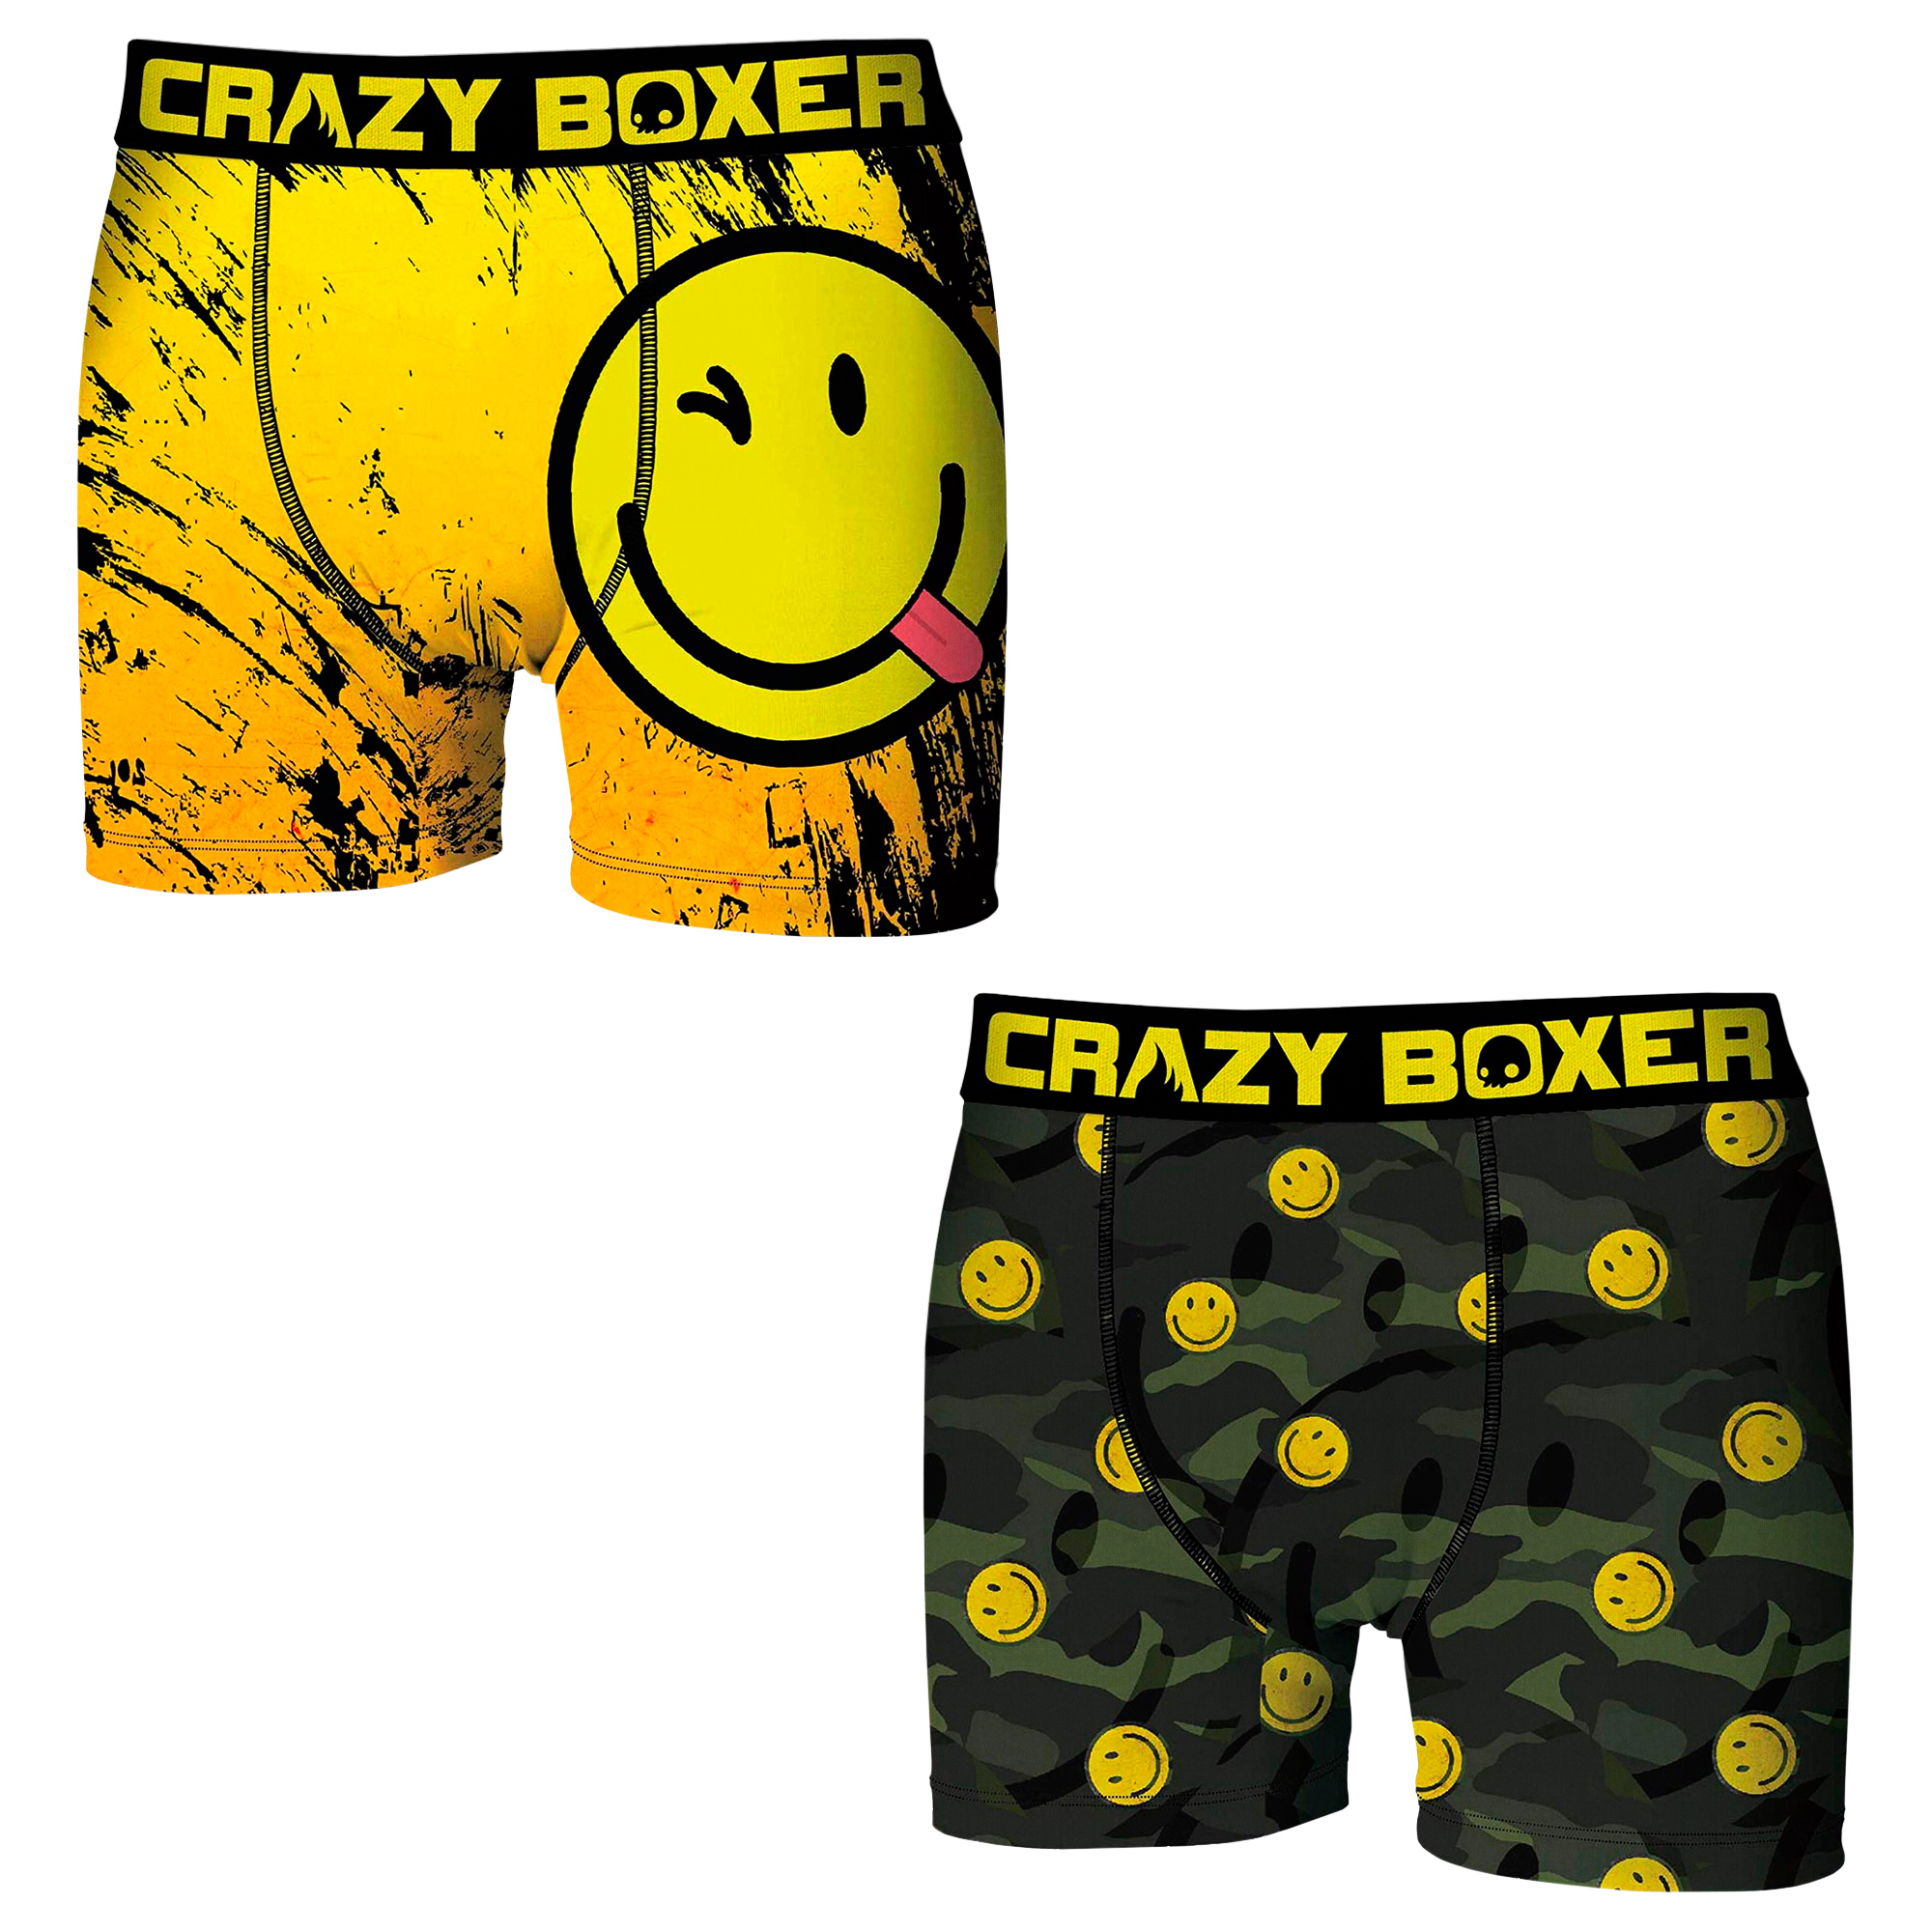 CRAZY BOXERS EMOJI BOXERS Stampings Pack 2 Units Or Single Type Boxer For Men